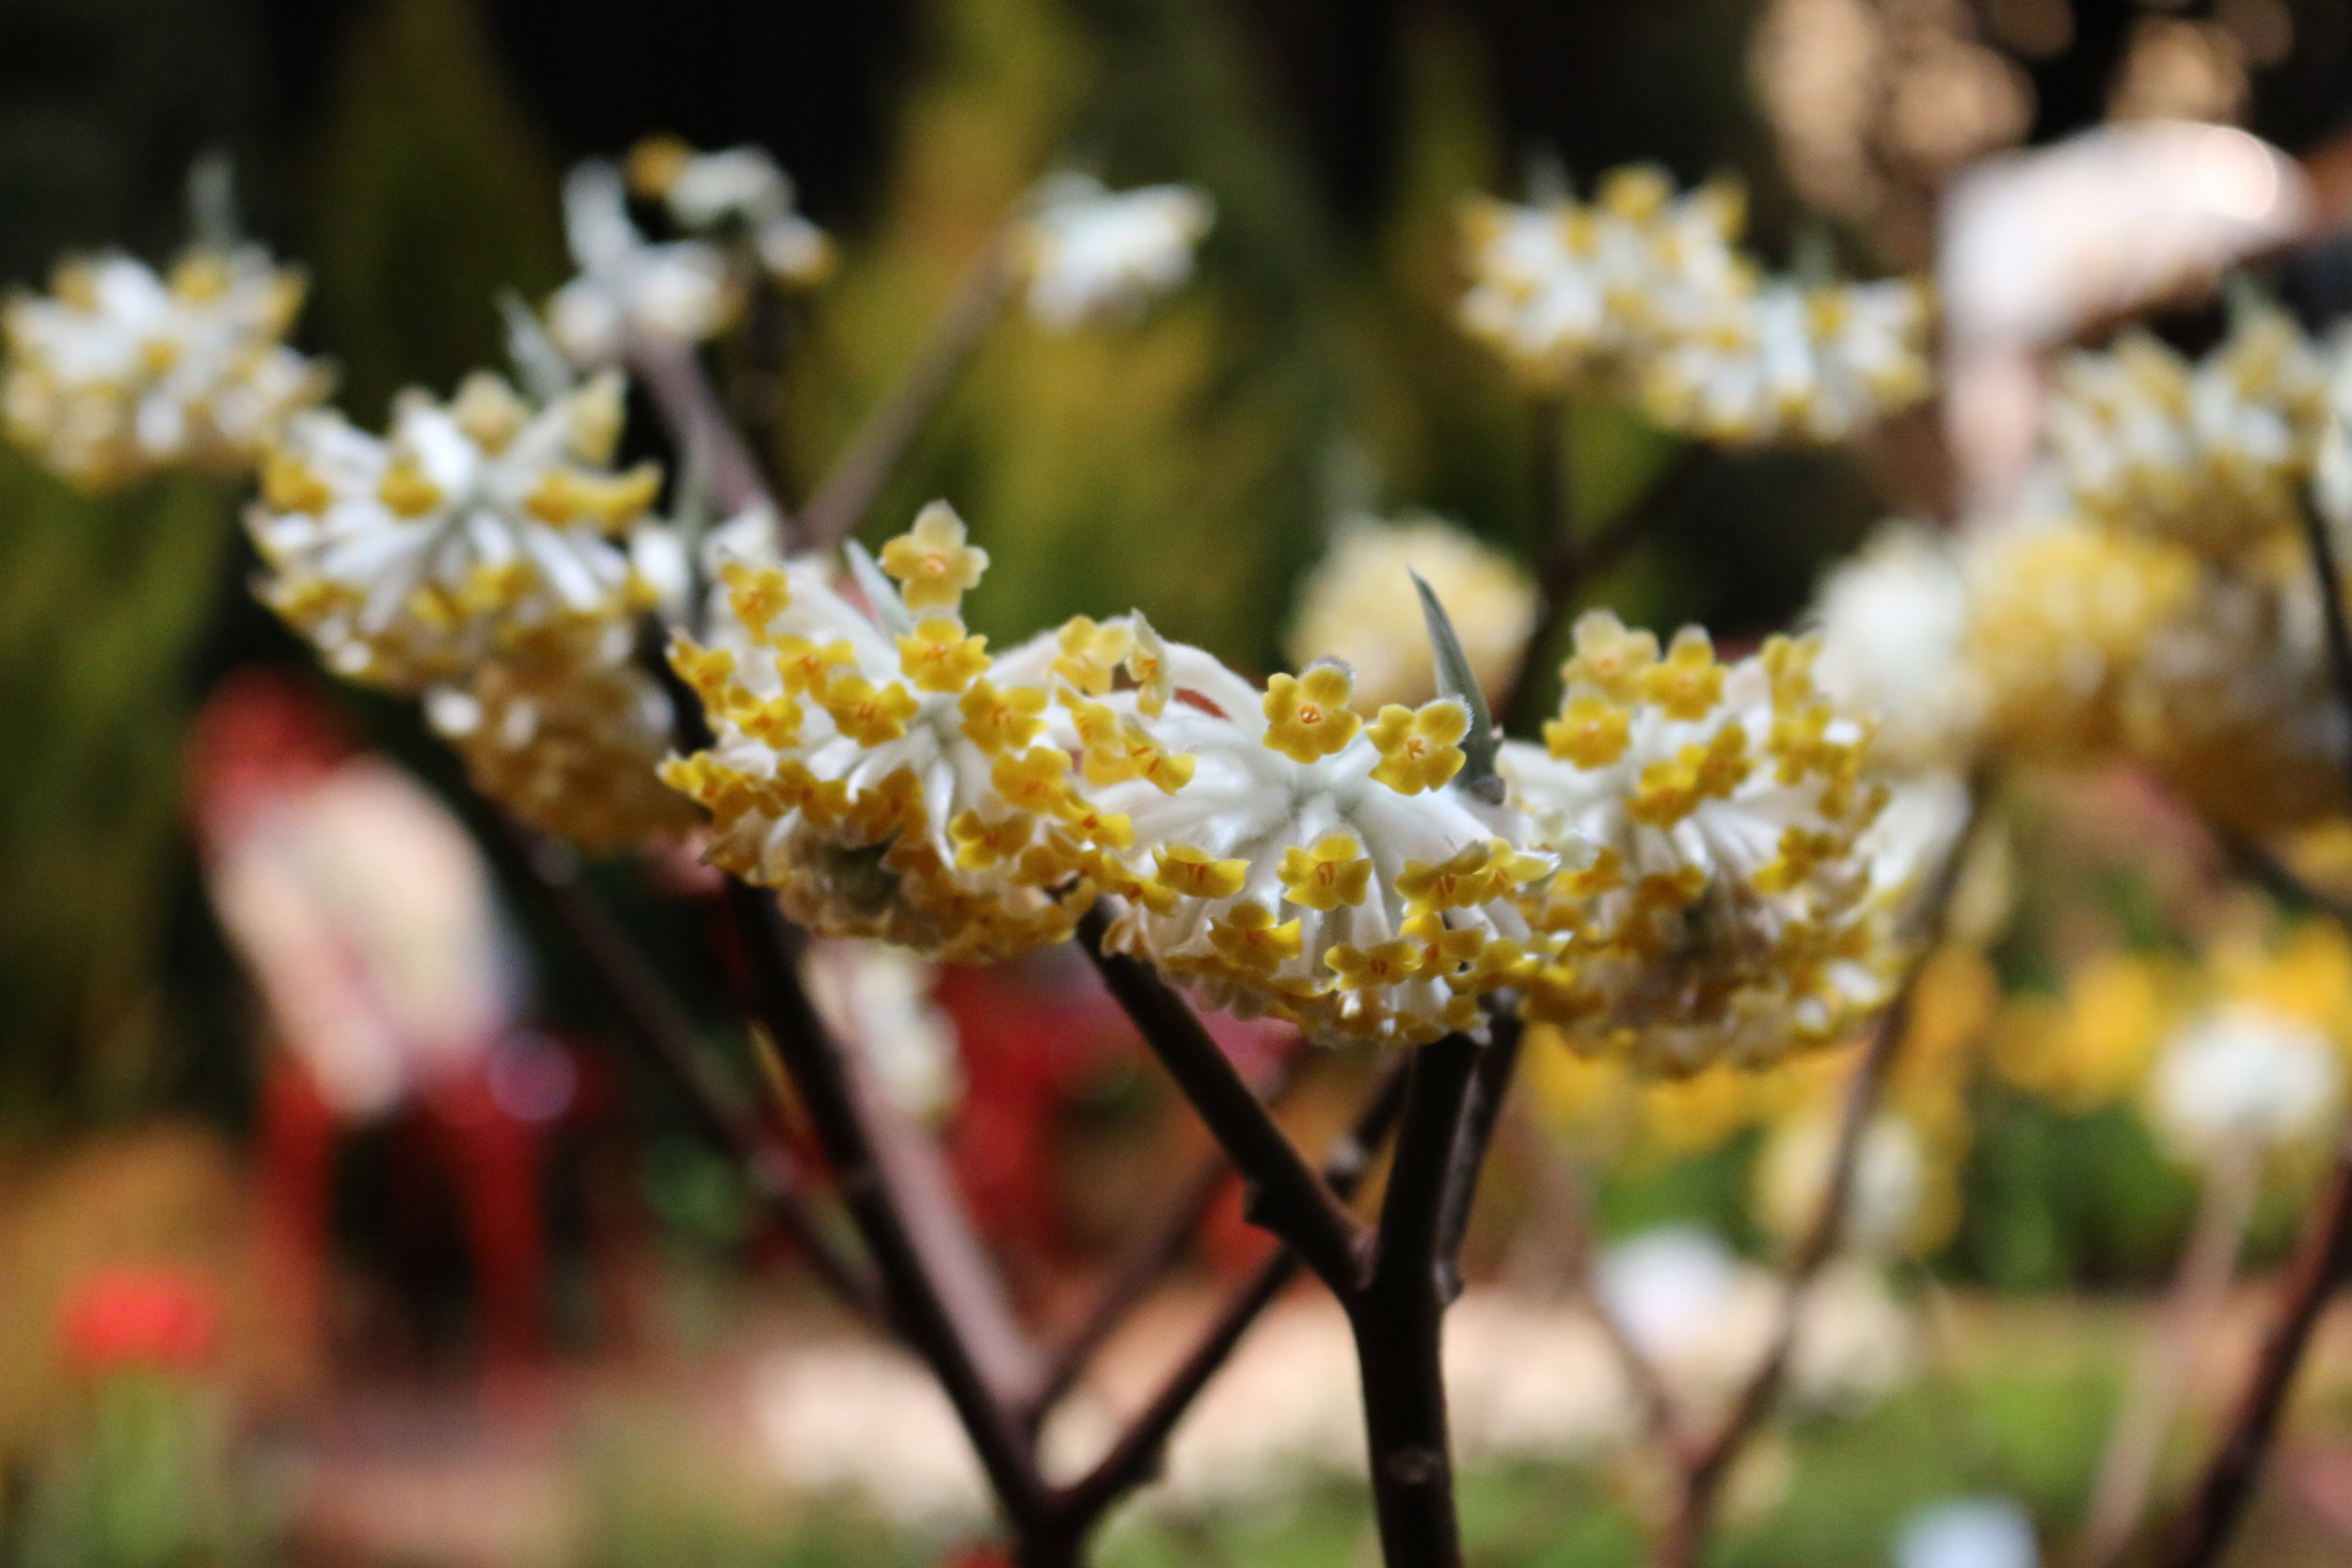 Edgeworthia   - as featured in the Victory Garden - 2017 Seattle Northwest Flower & Garden Show.   This was a show stopper.  By far the most popular plant and most inquired about in the Dakara Garden this year.   For more detailed information on this plant click  here .